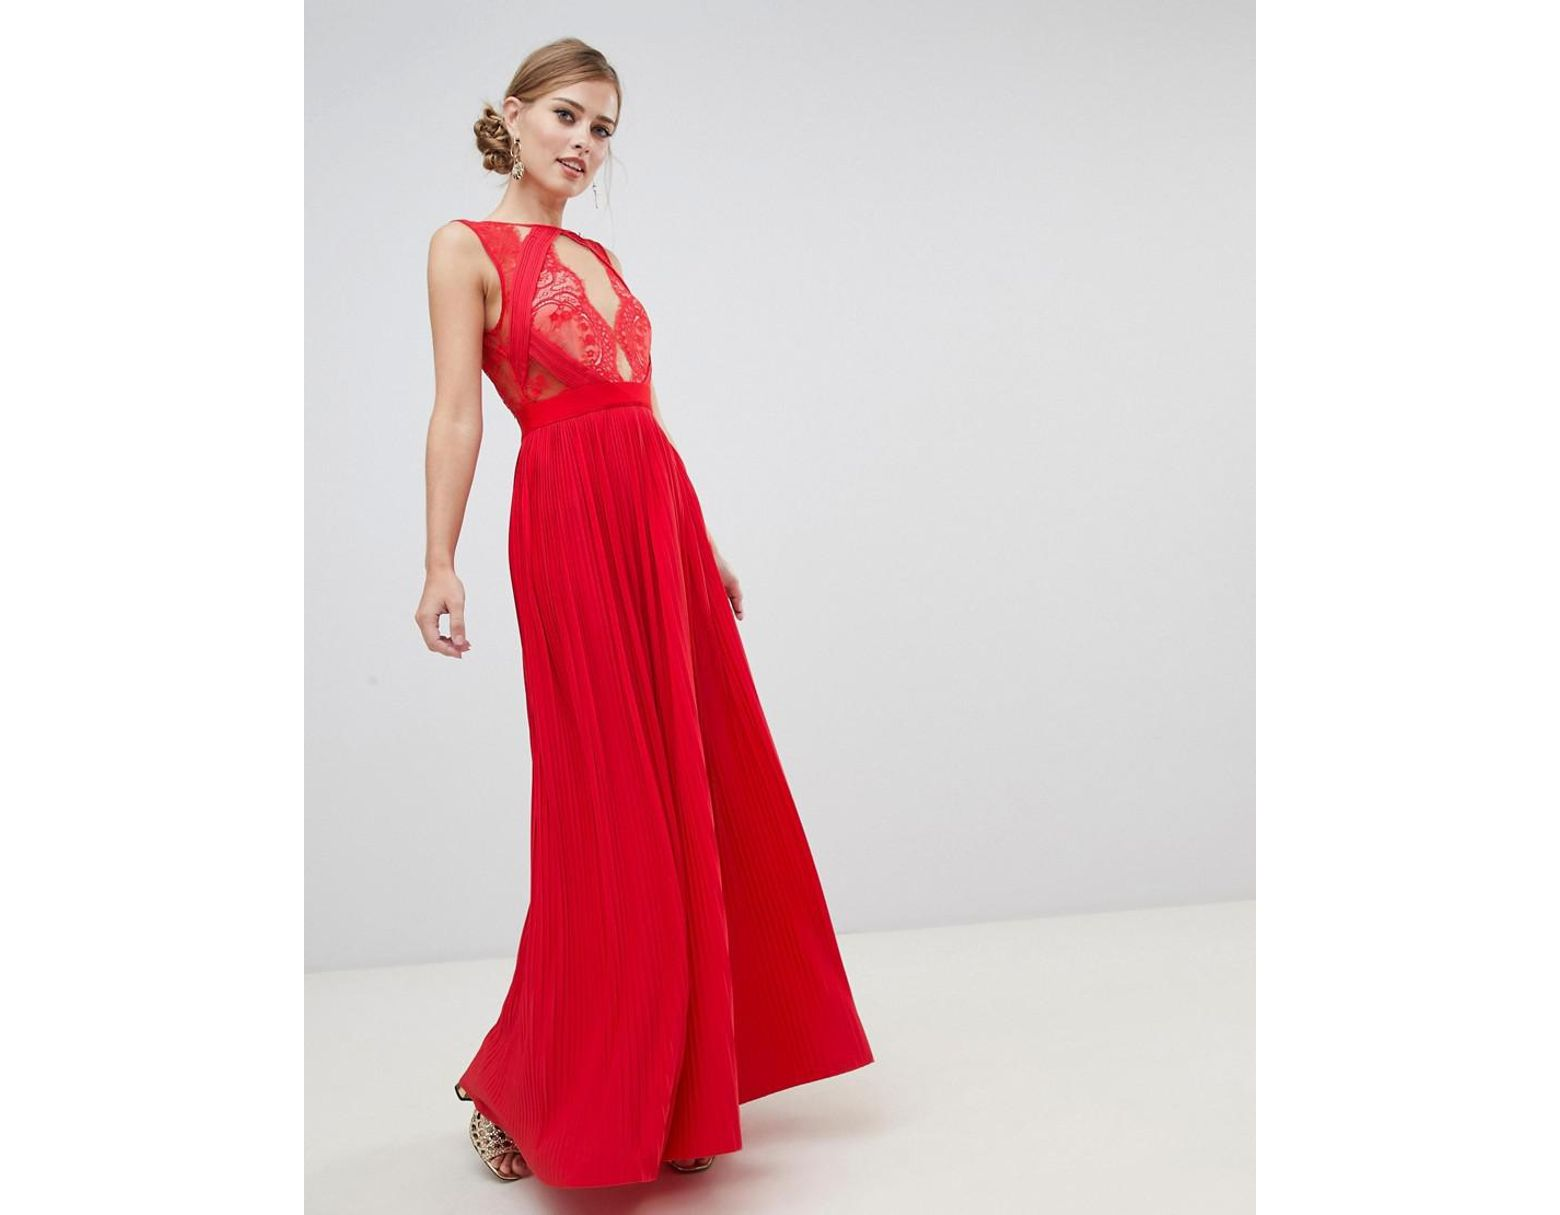 e4a69126401e2 ASOS Premium Scallop Lace Top Pleated Maxi Dress in Red - Lyst